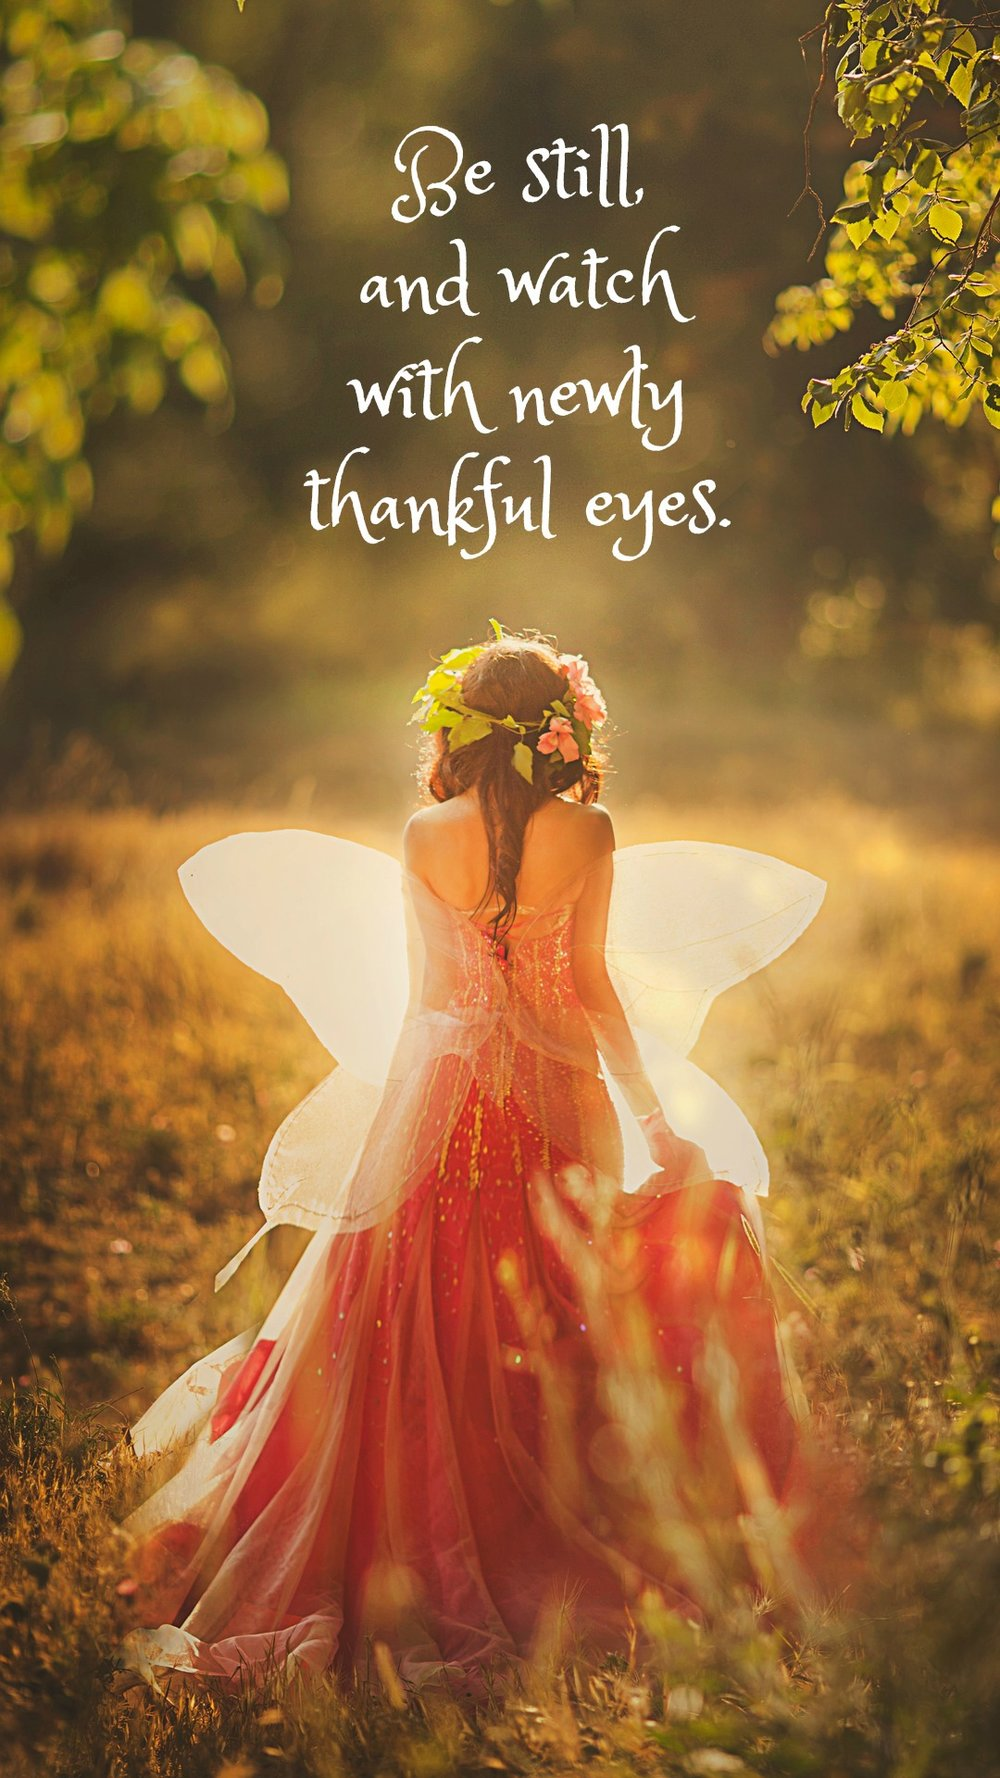 Be still and watch with newly thankful eyes.